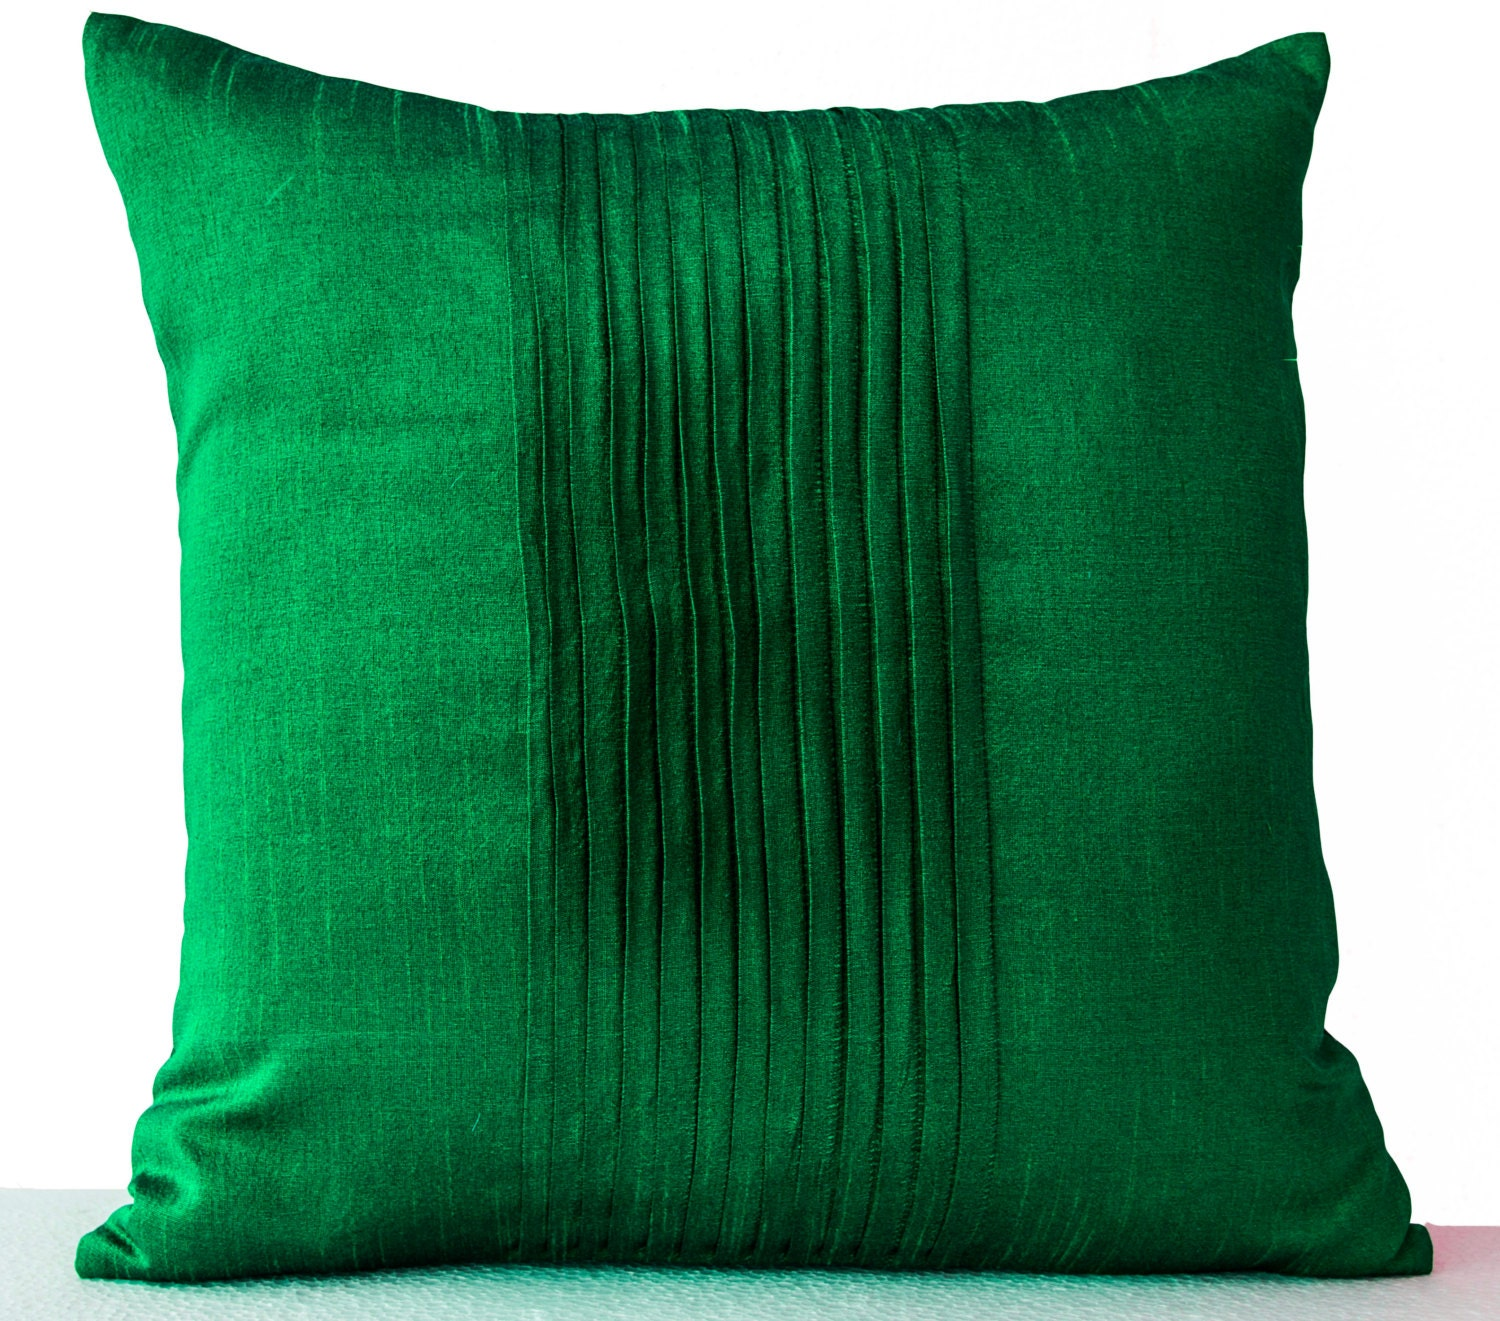 Decorative Pillow For Couch Throw Pillows in Emerald Green